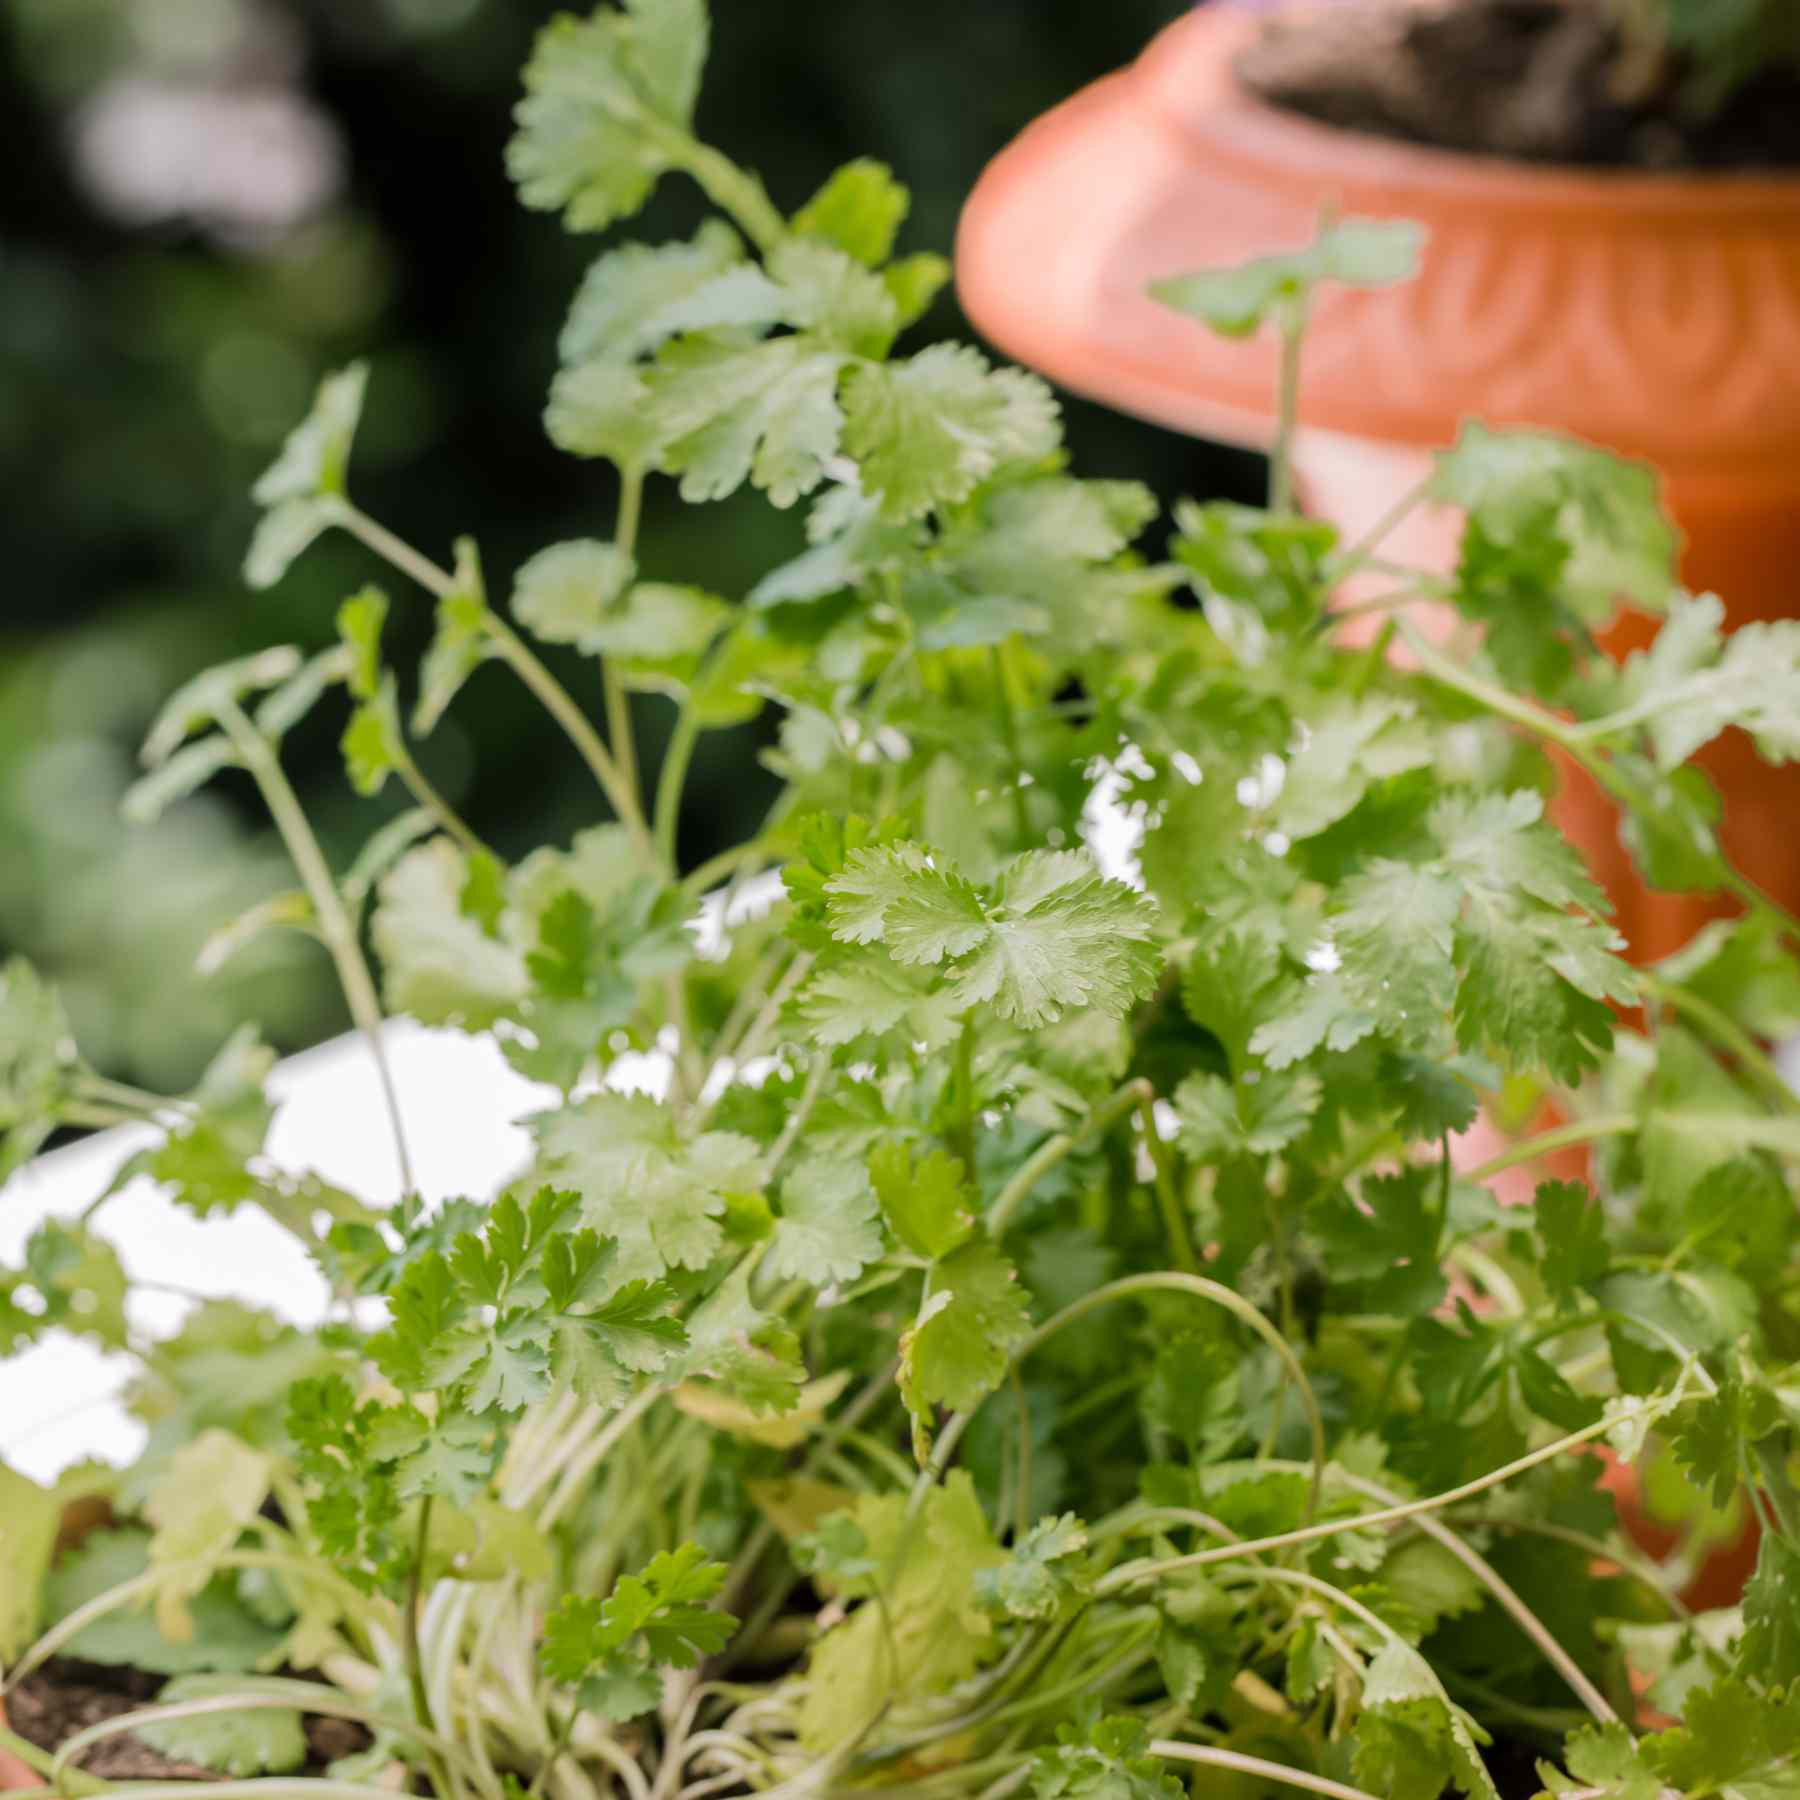 cilantro growing in a container